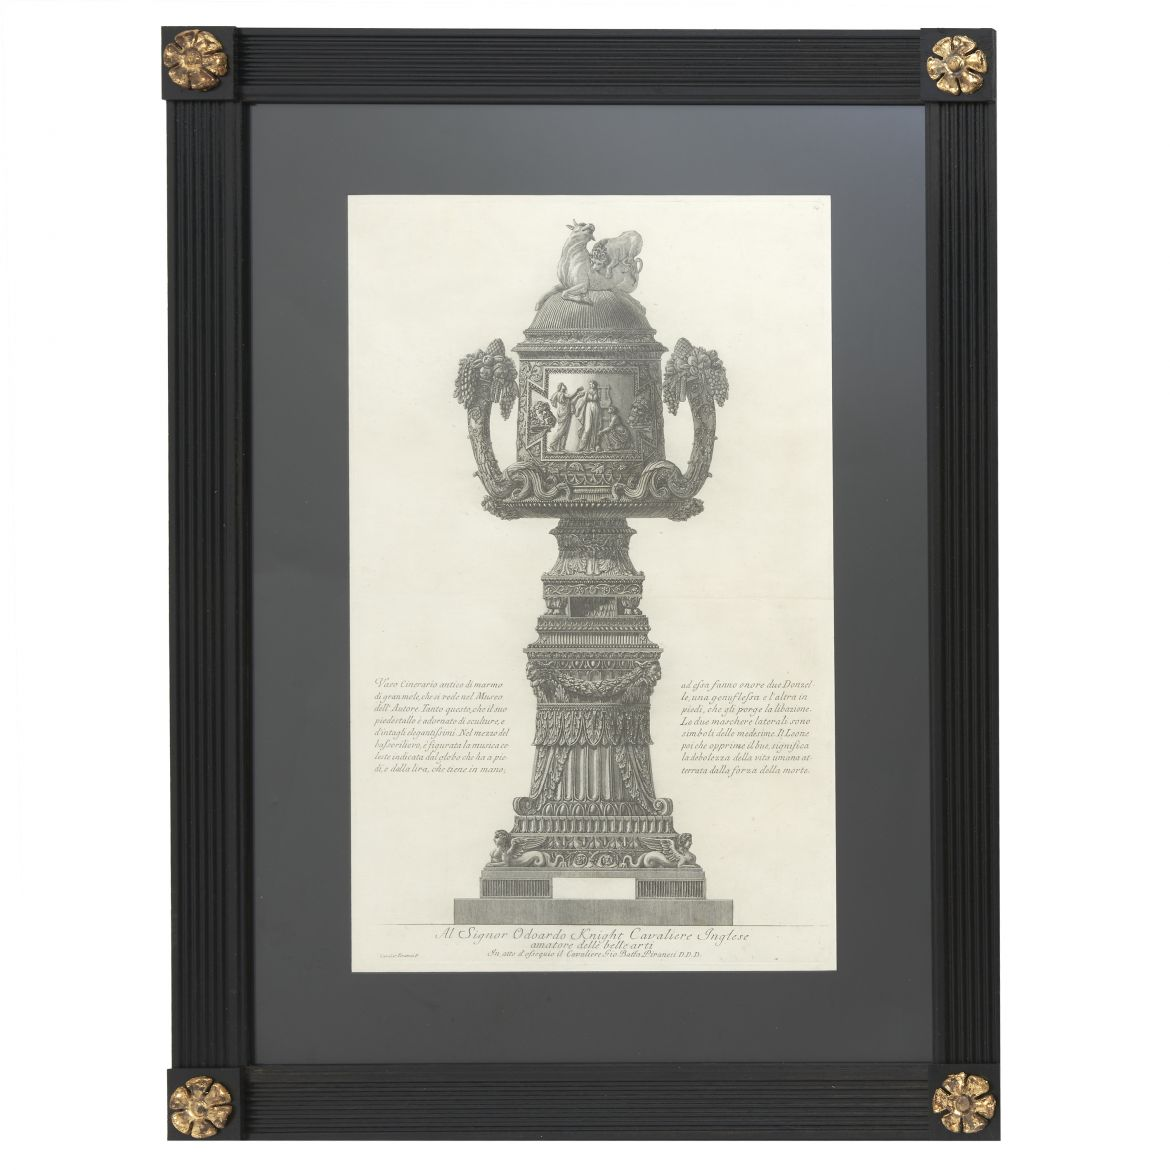 Large Vase Etching By Piranesi